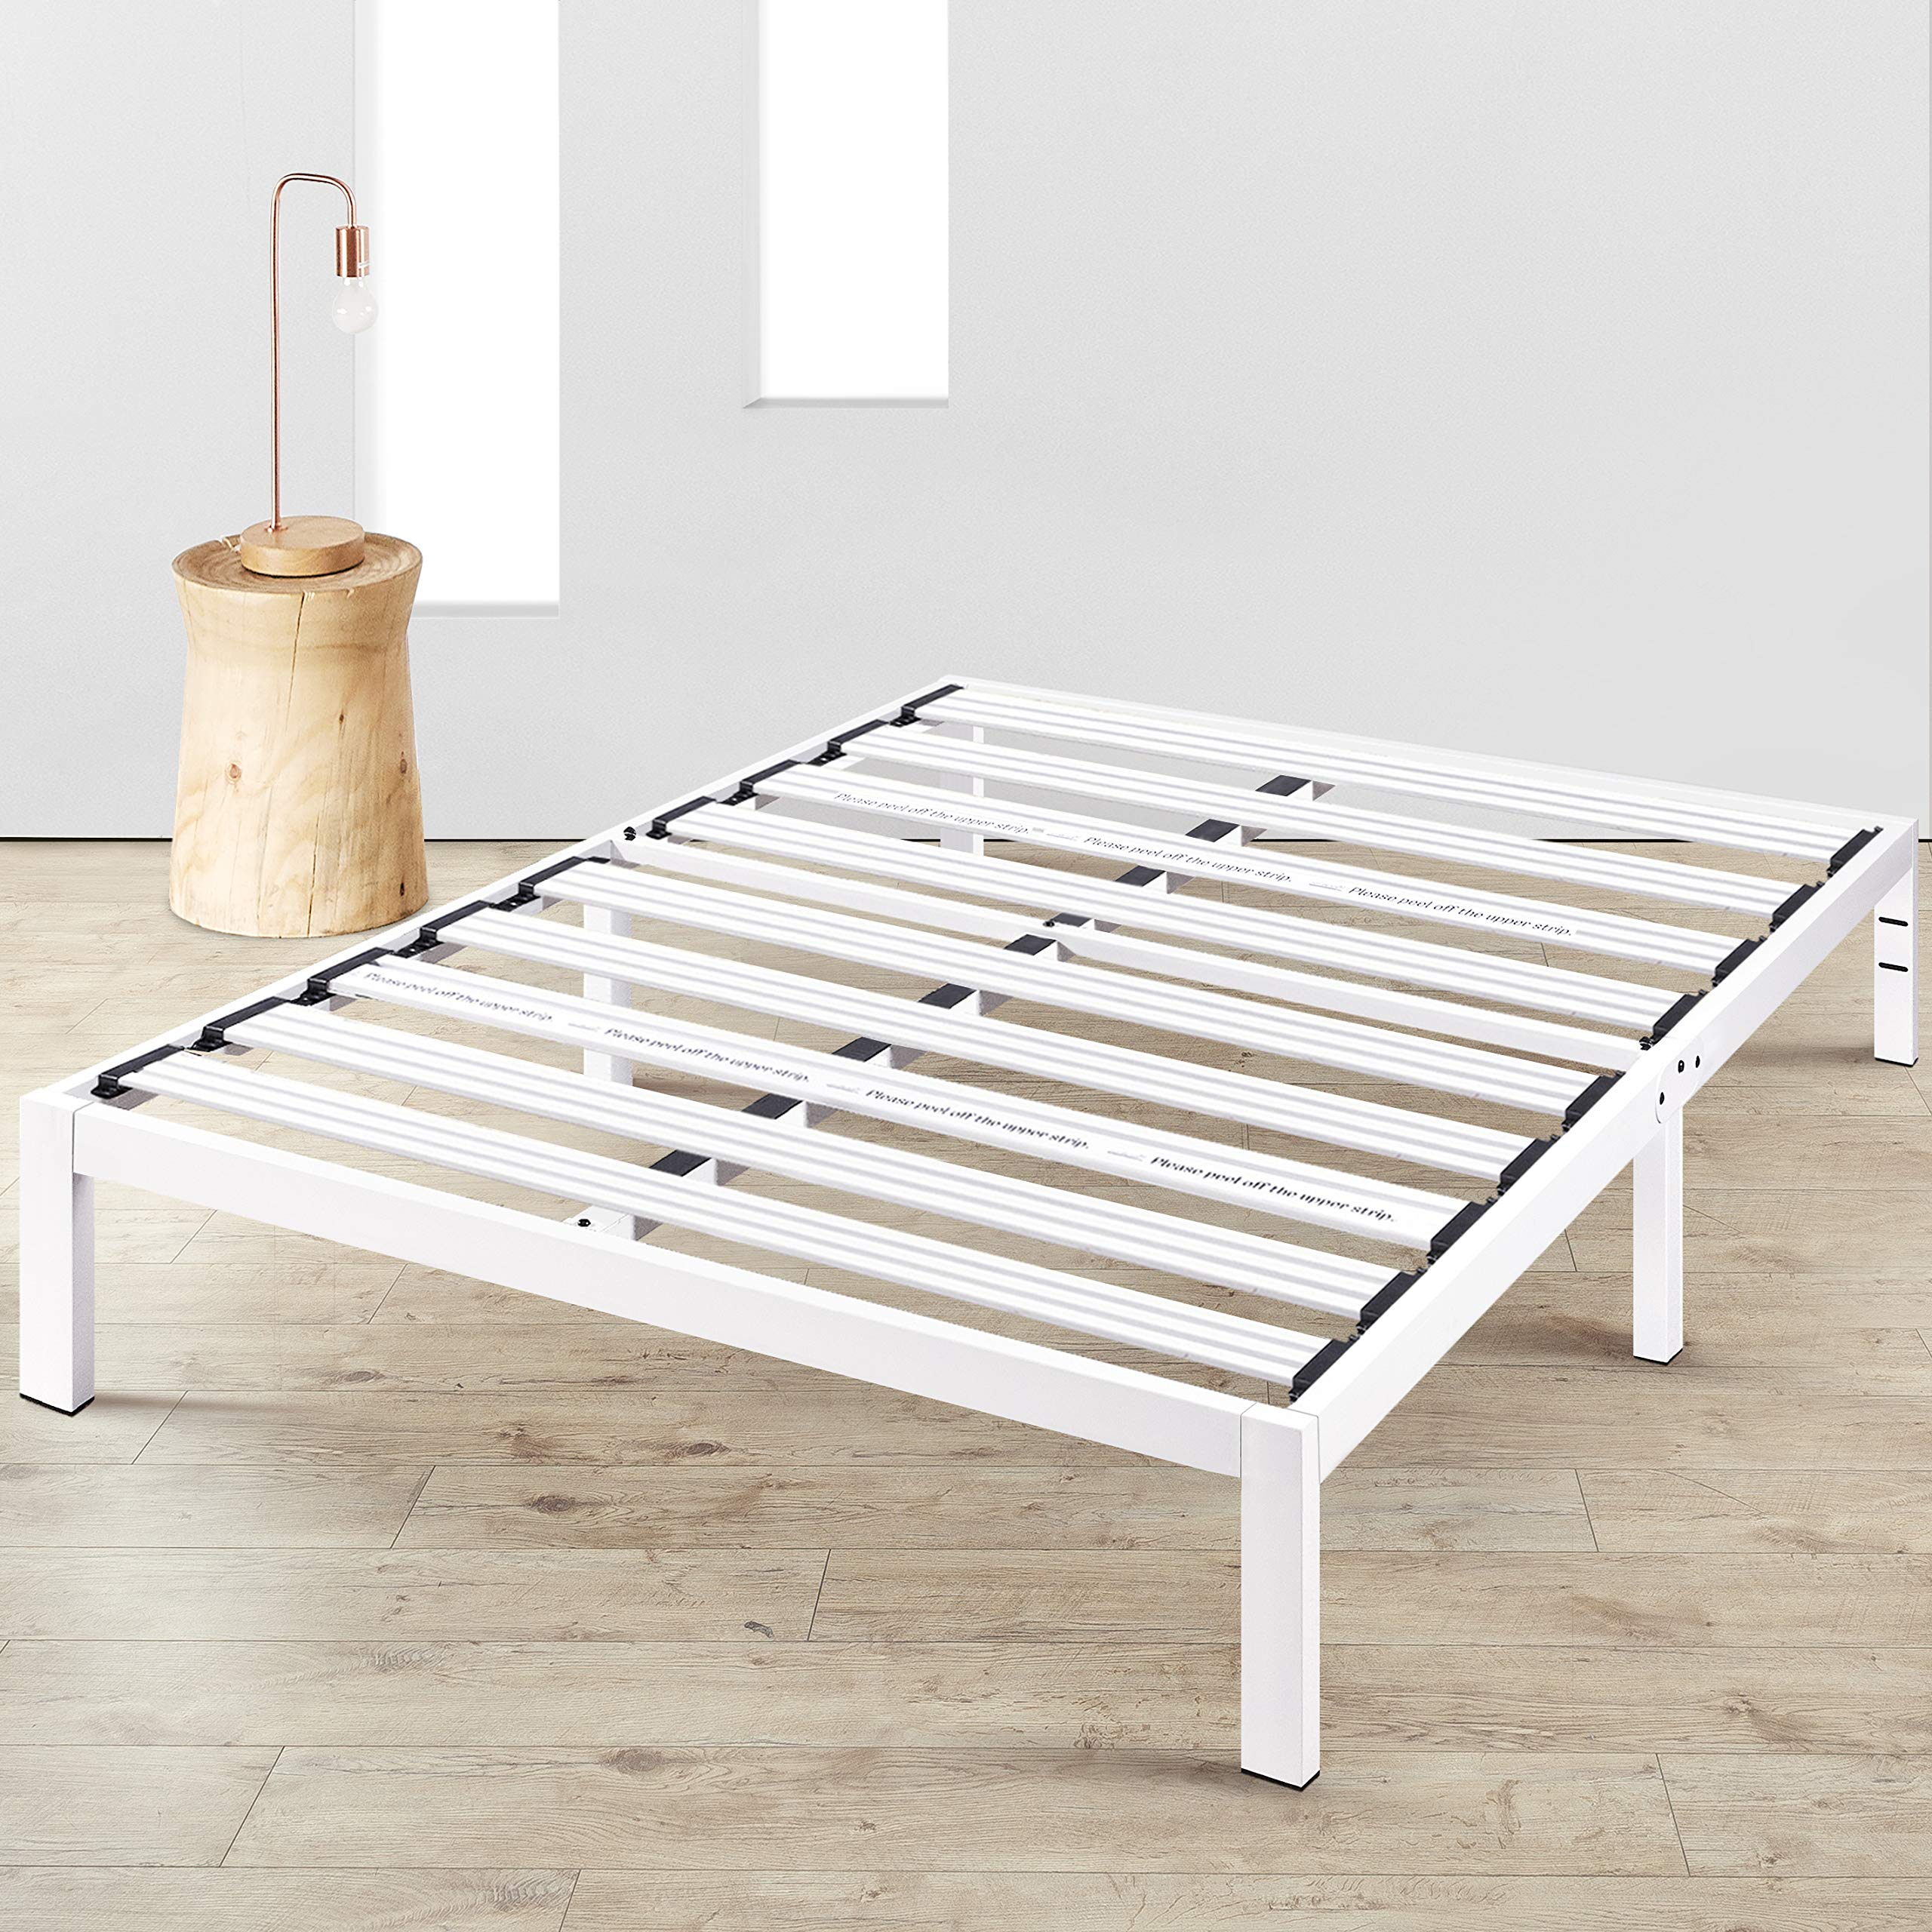 Mellow Rocky Base E (Full) - Modern Metal Platform Bed/ Heavy Duty Steel Slats/ No Box Spring Needed/ Added Support Legs, White by Mellow